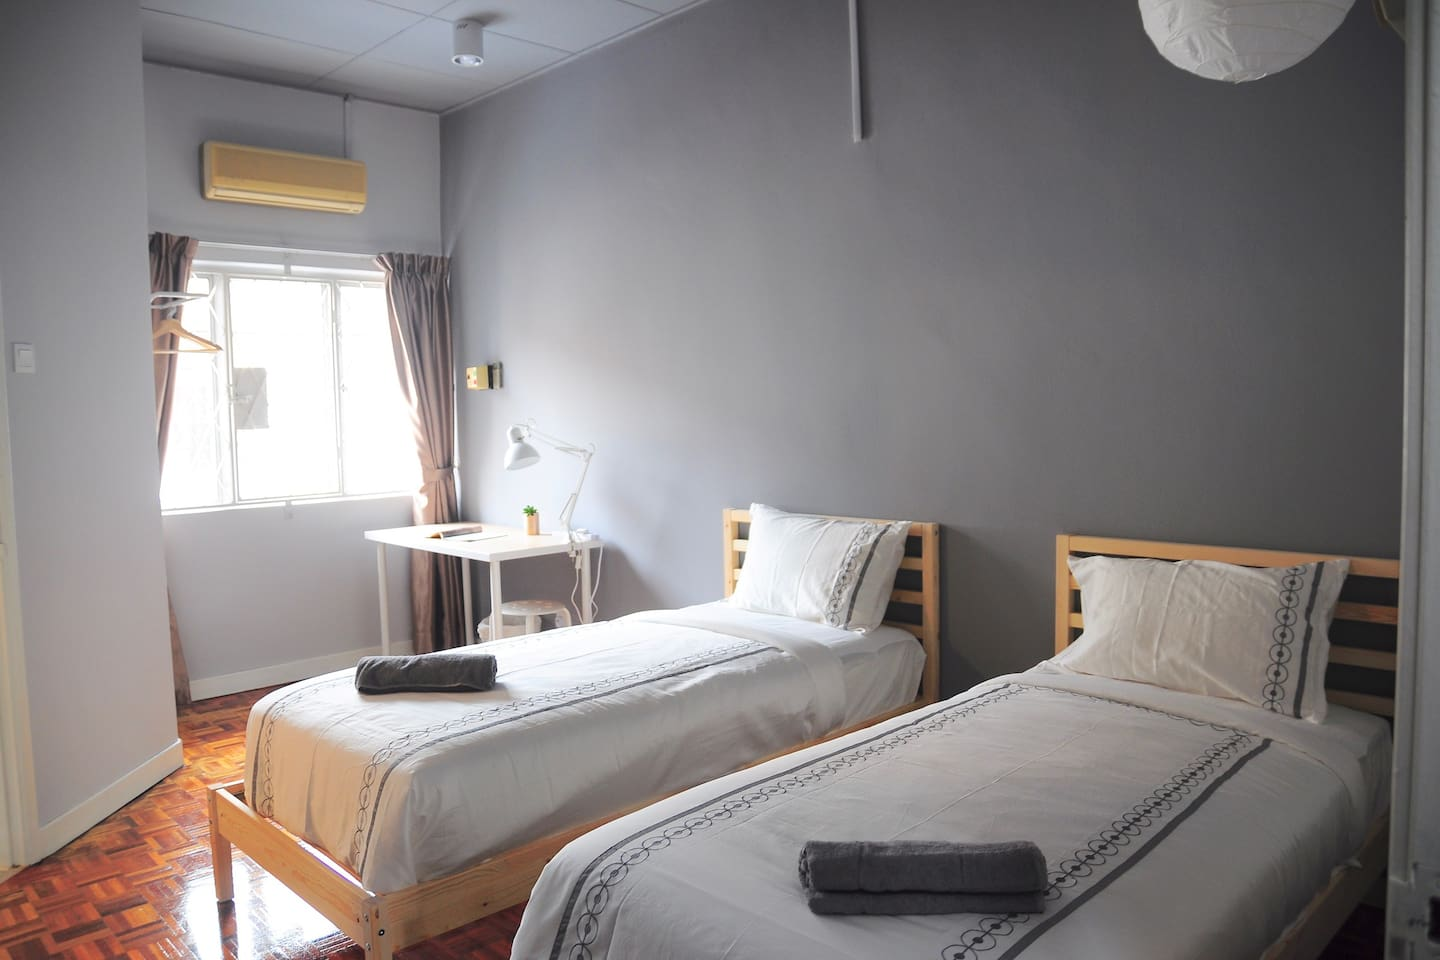 2nd Floor Standard Queen Room with 2 Single Beds, Smart TV with 100+ Channels and Shared Attached Bathroom